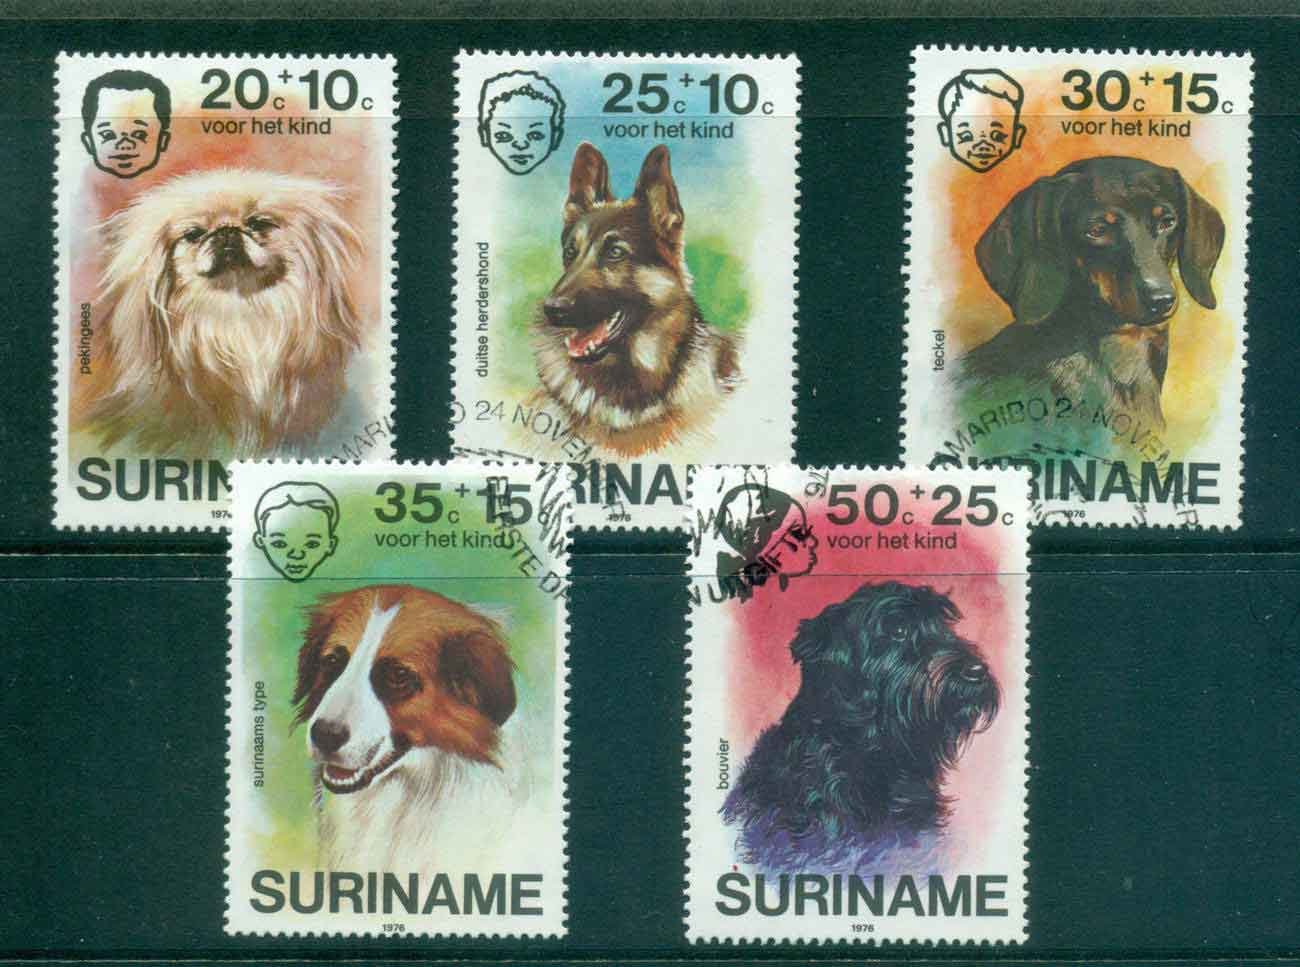 Surinam 1976 Child Welfare, Dogs FU Lot47219